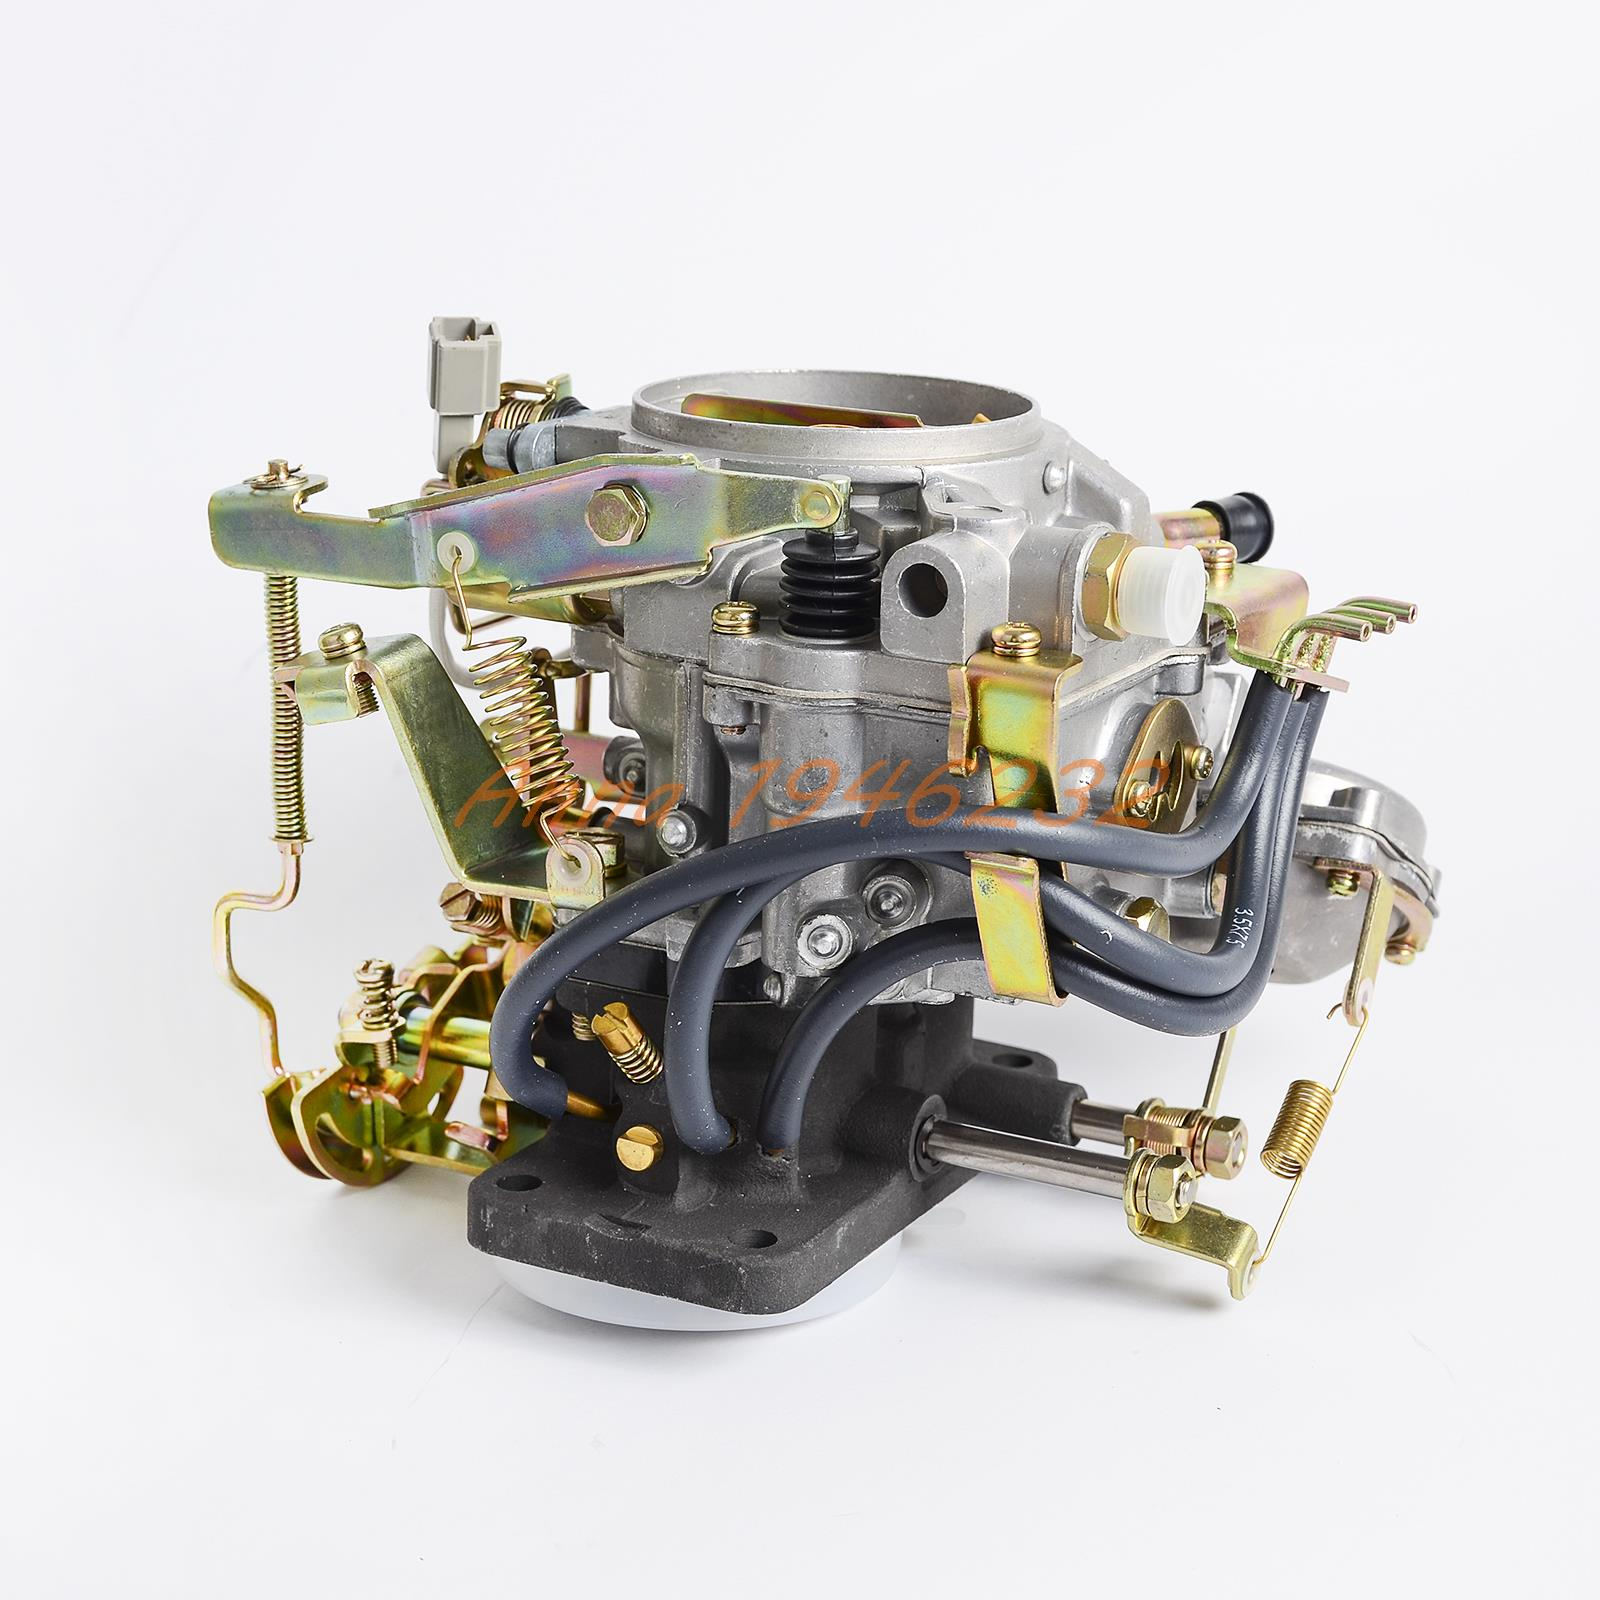 New New Carburetor fits for TOYOTA 3F LAND CRUISER 1984 1992 Carby 21100 61360